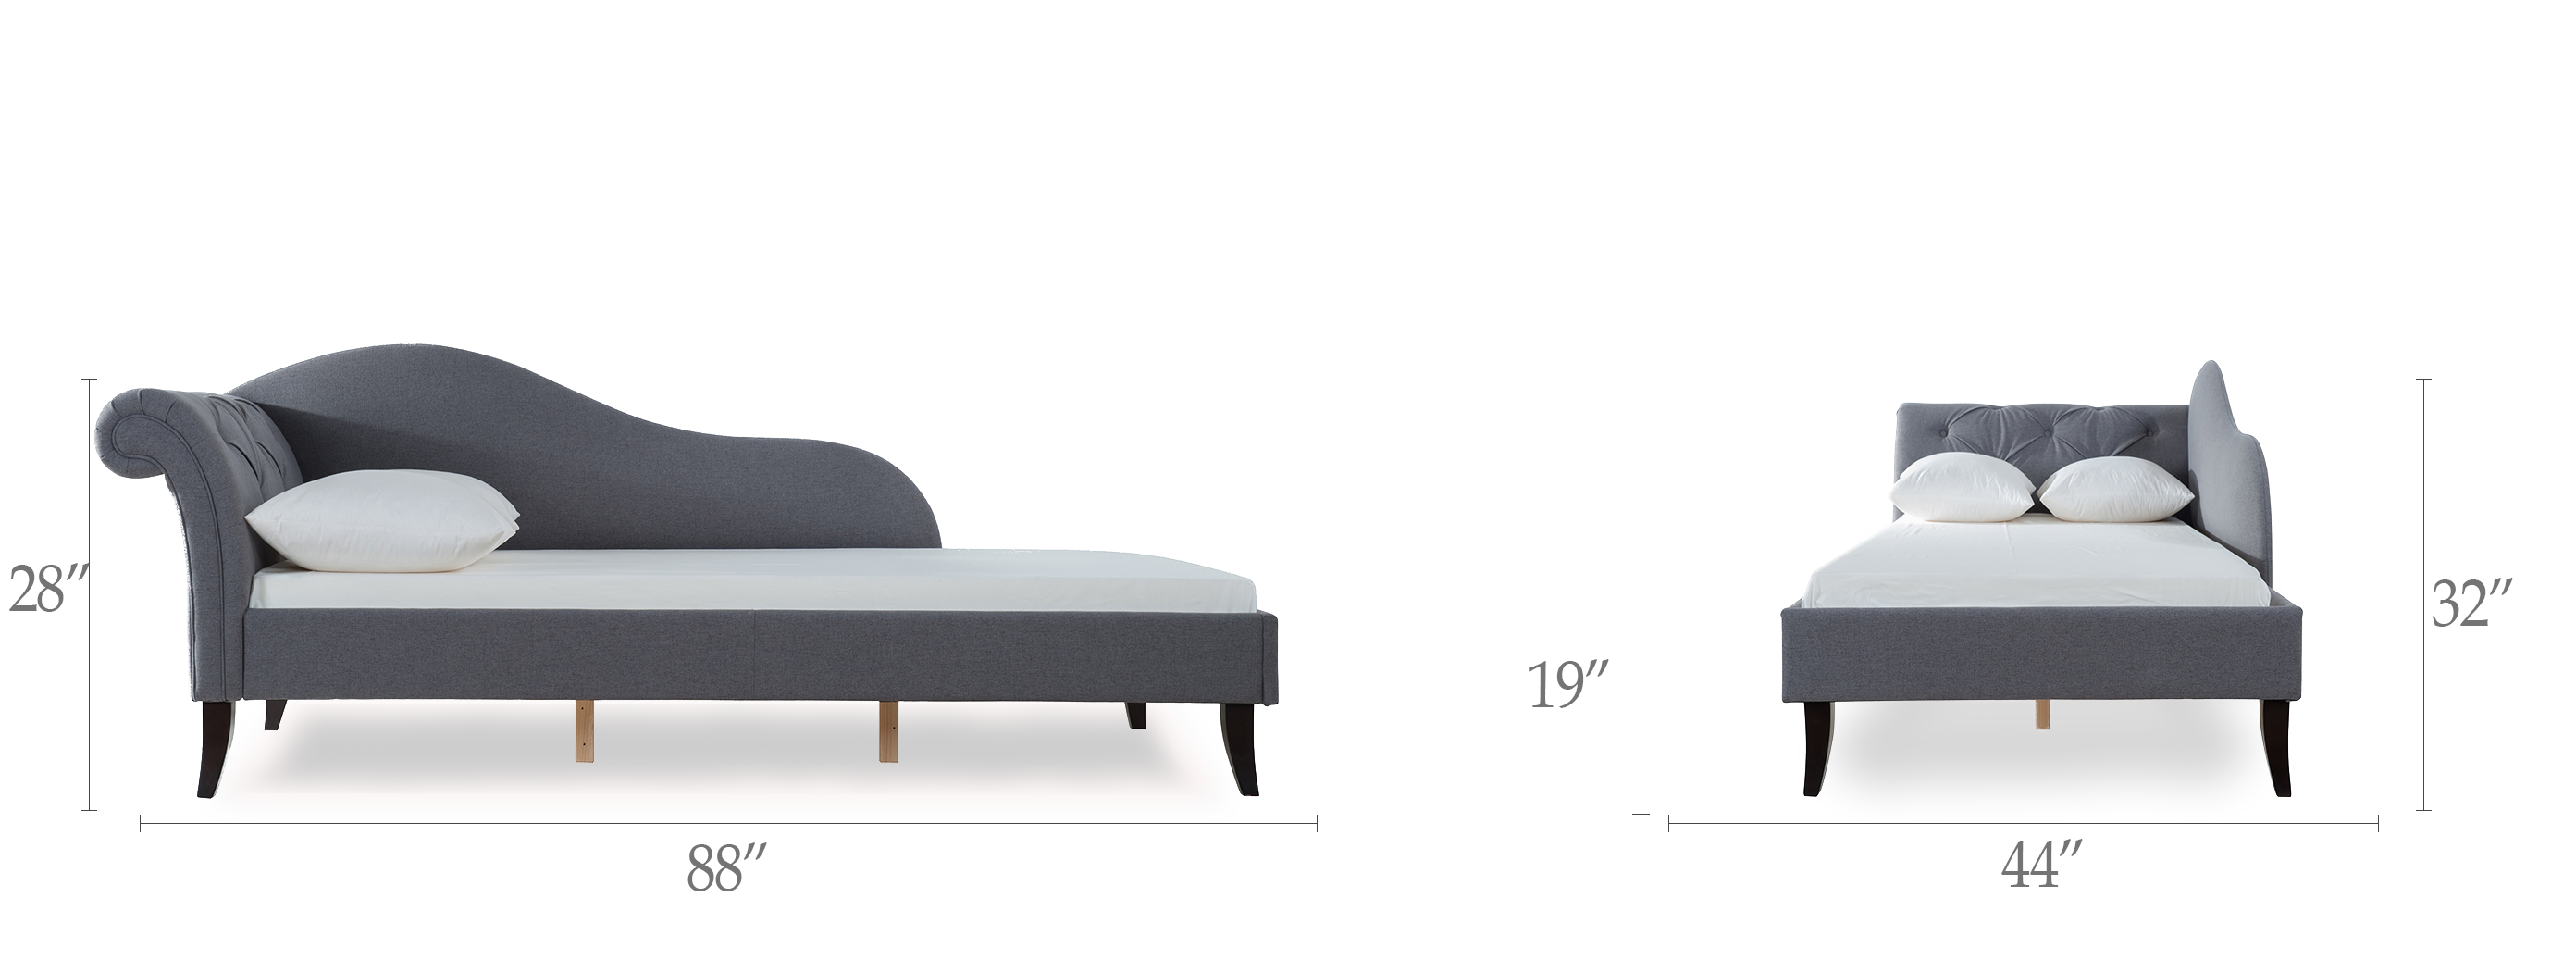 Eliana Chaise Sofa Bed